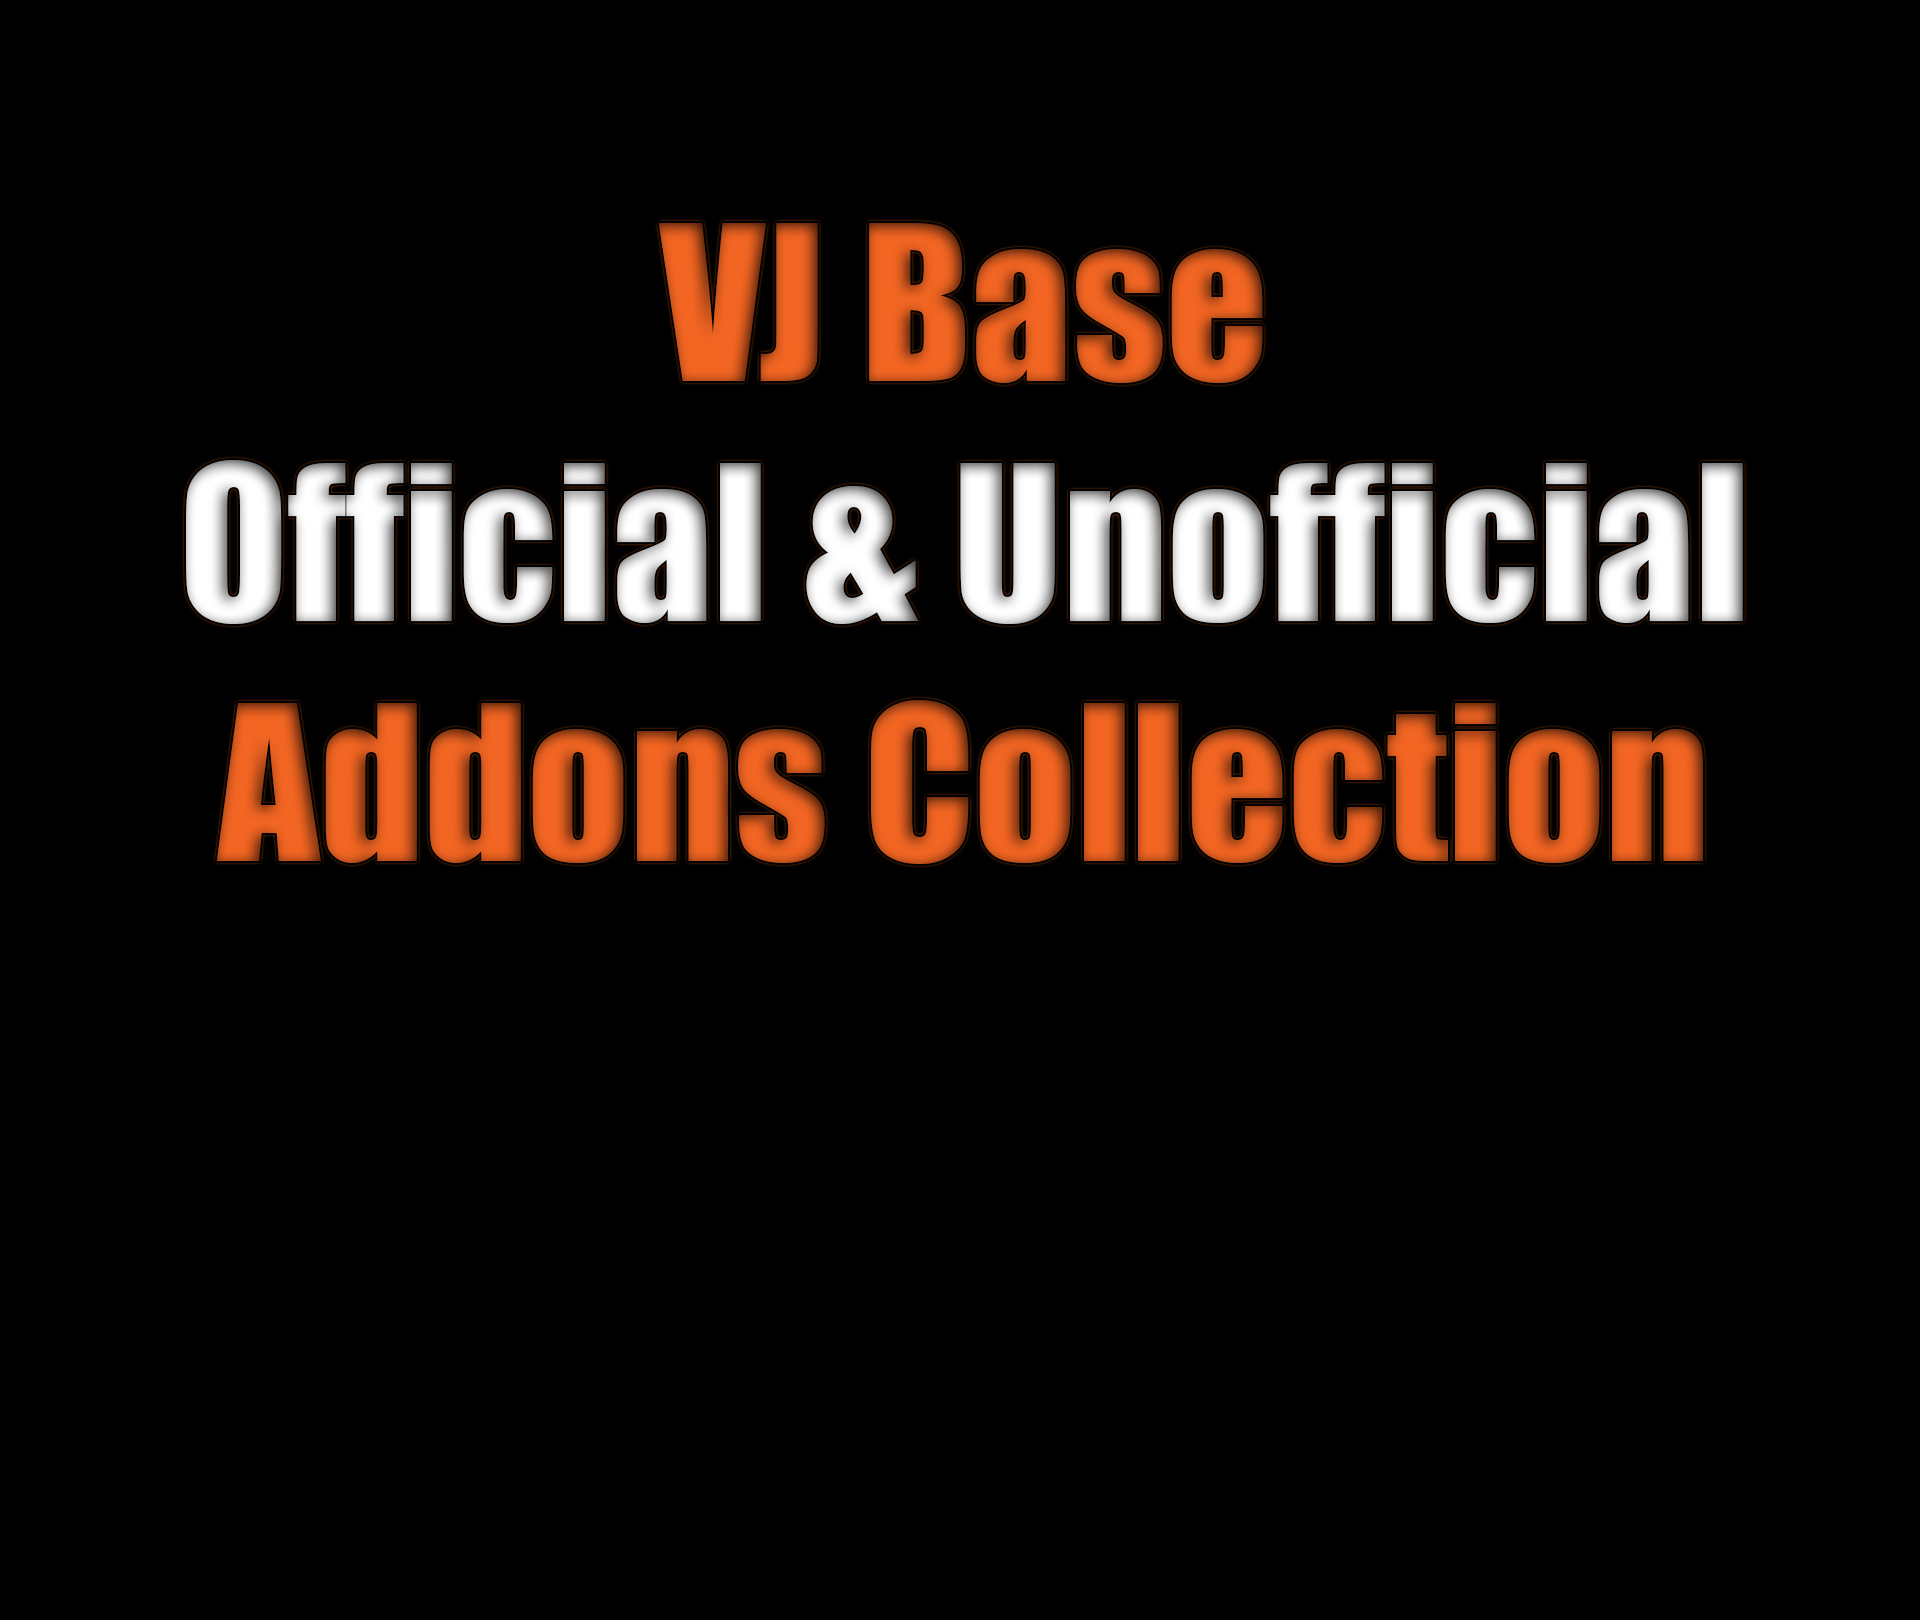 V J Steam Workshop Vj Base Official And Unofficial Addons